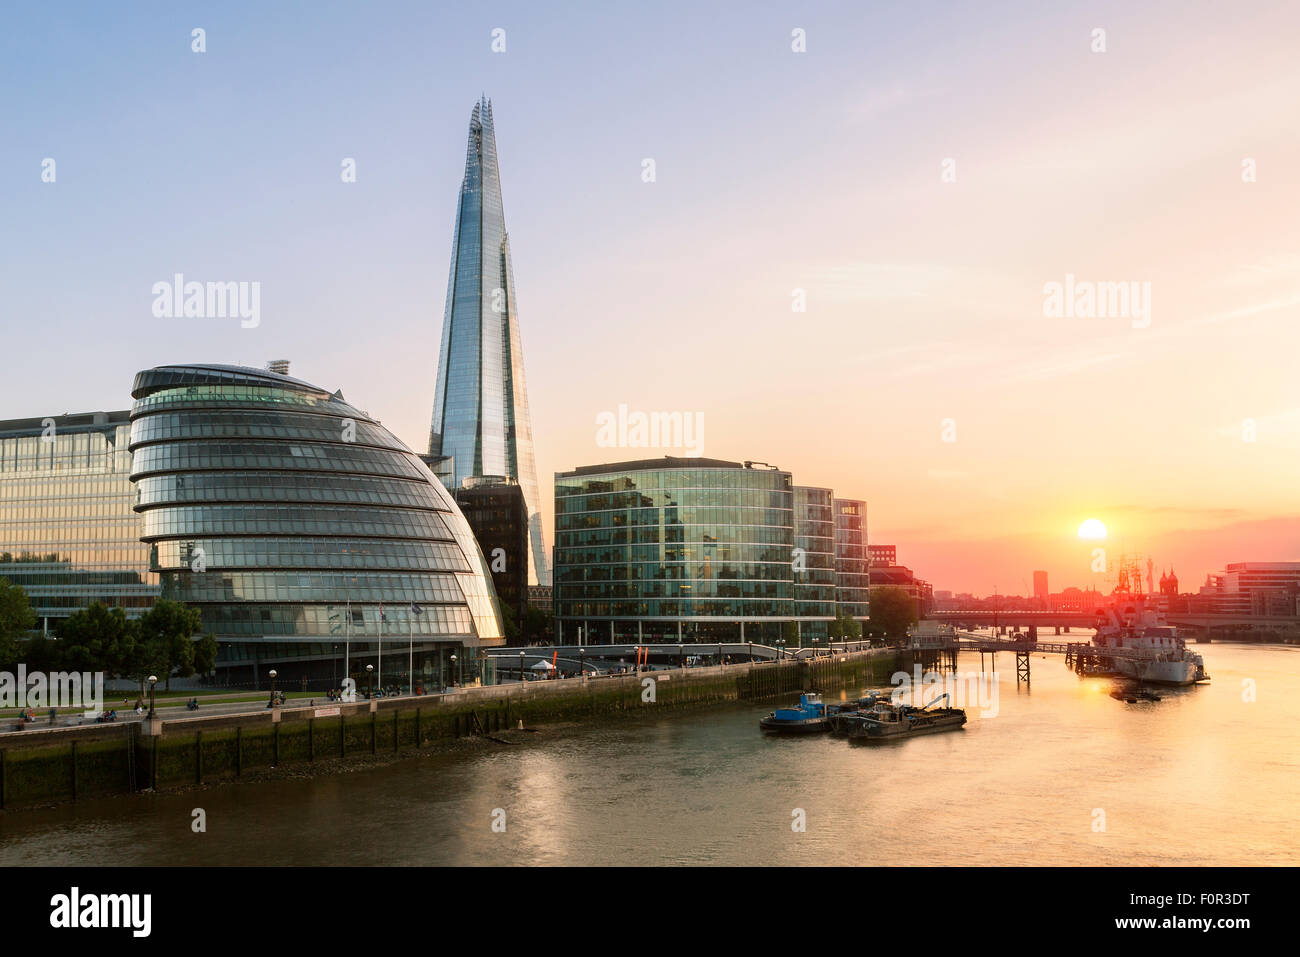 London, Shard London Bridge and London City hall at Sunset - Stock Image